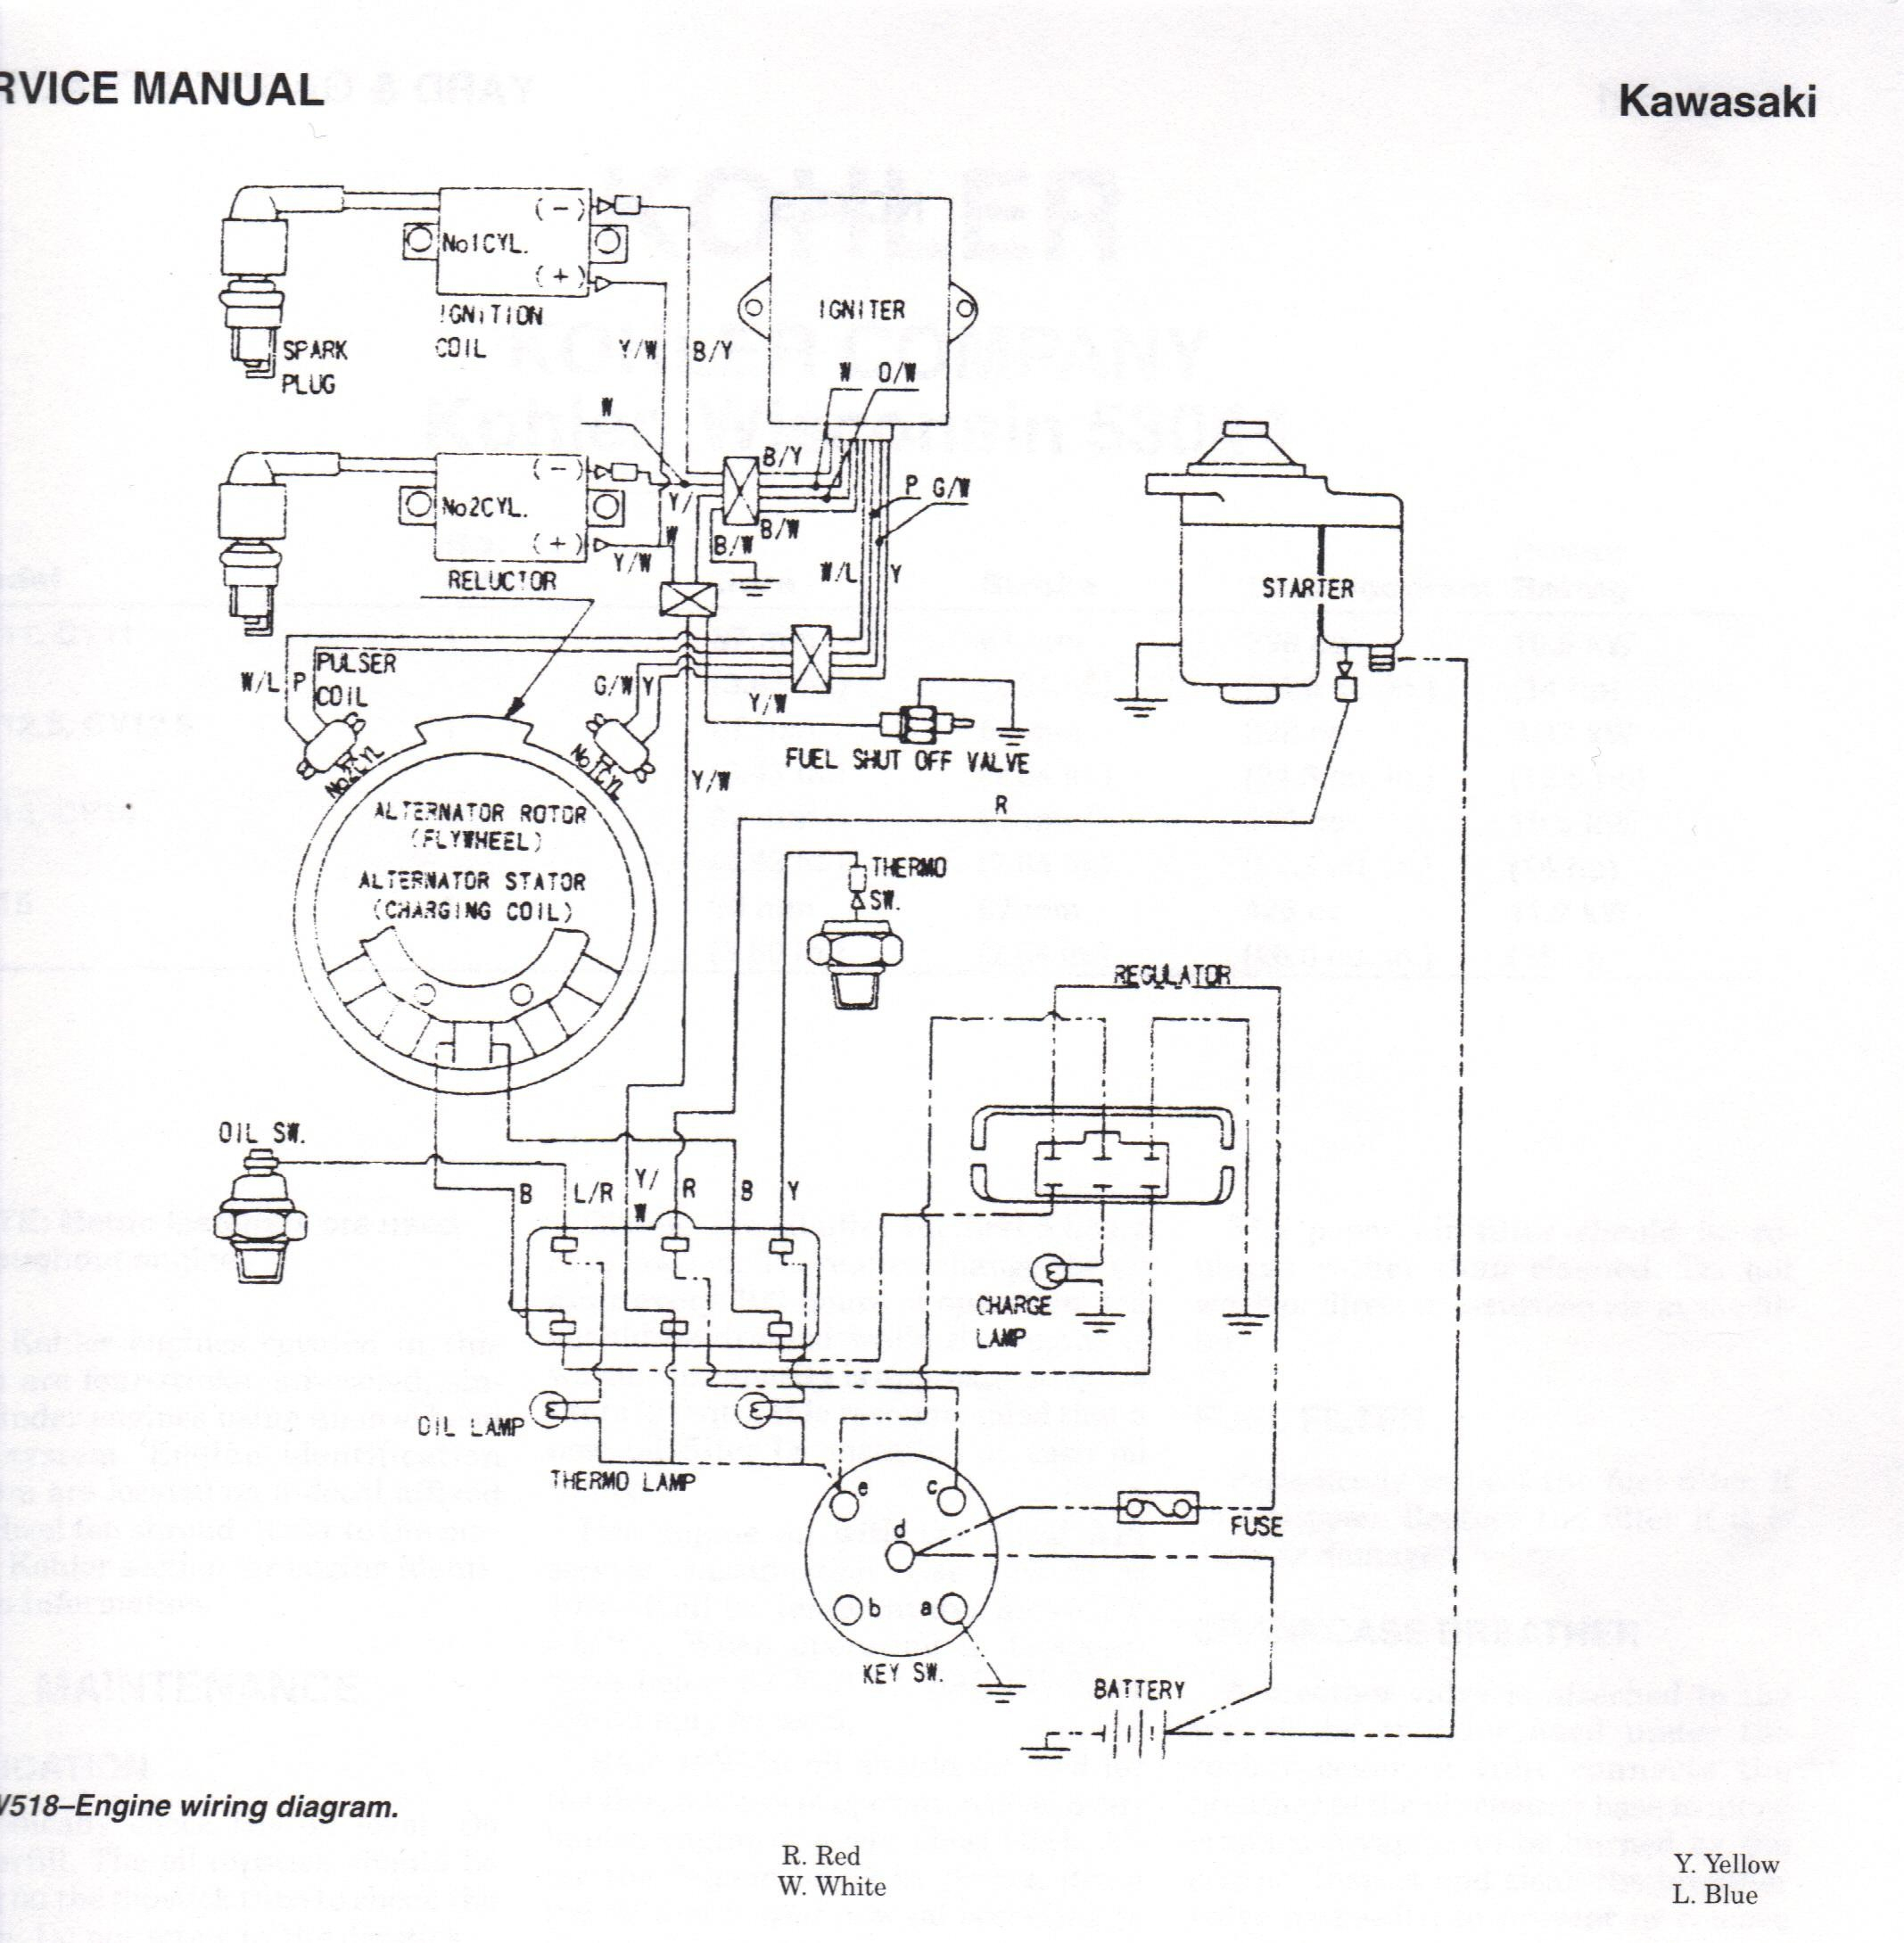 Gm Ignition Switch Wiring Diagram - Wiring Diagram And Schematics - Gm Ignition Switch Wiring Diagram